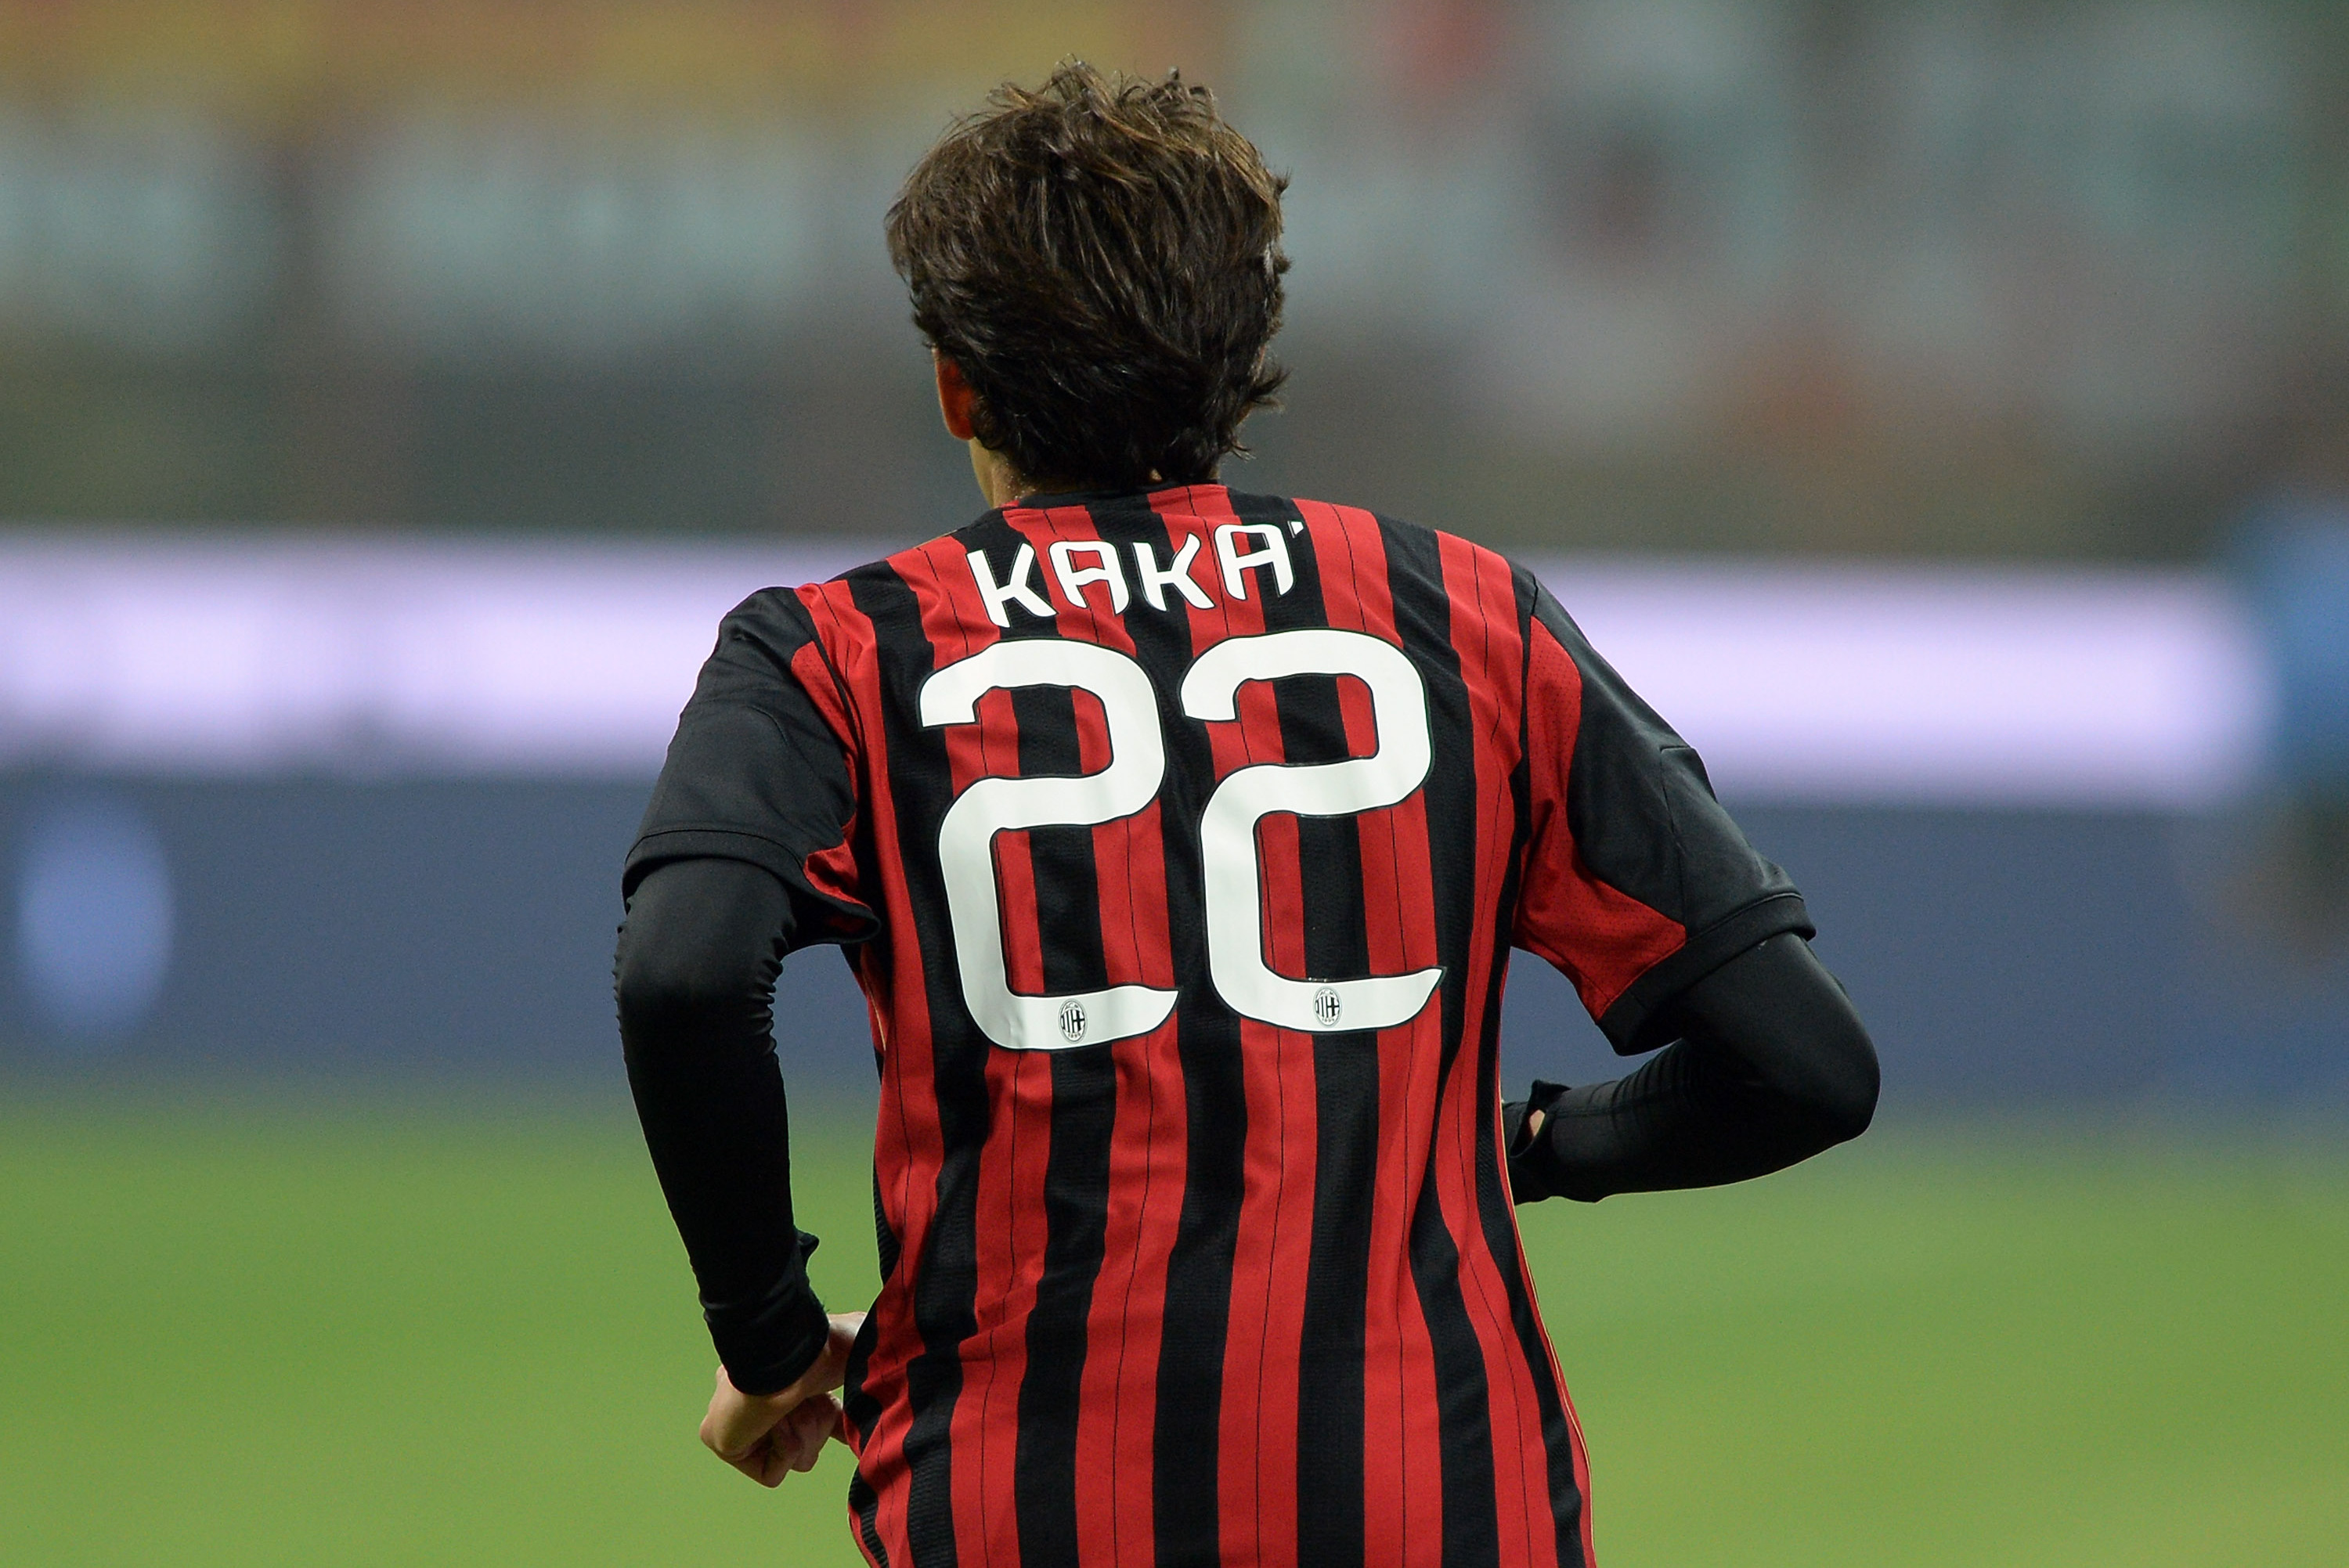 Kaka Aiming For Selecao After Ac Milan Revival Bleacher Report Latest News Videos And Highlights